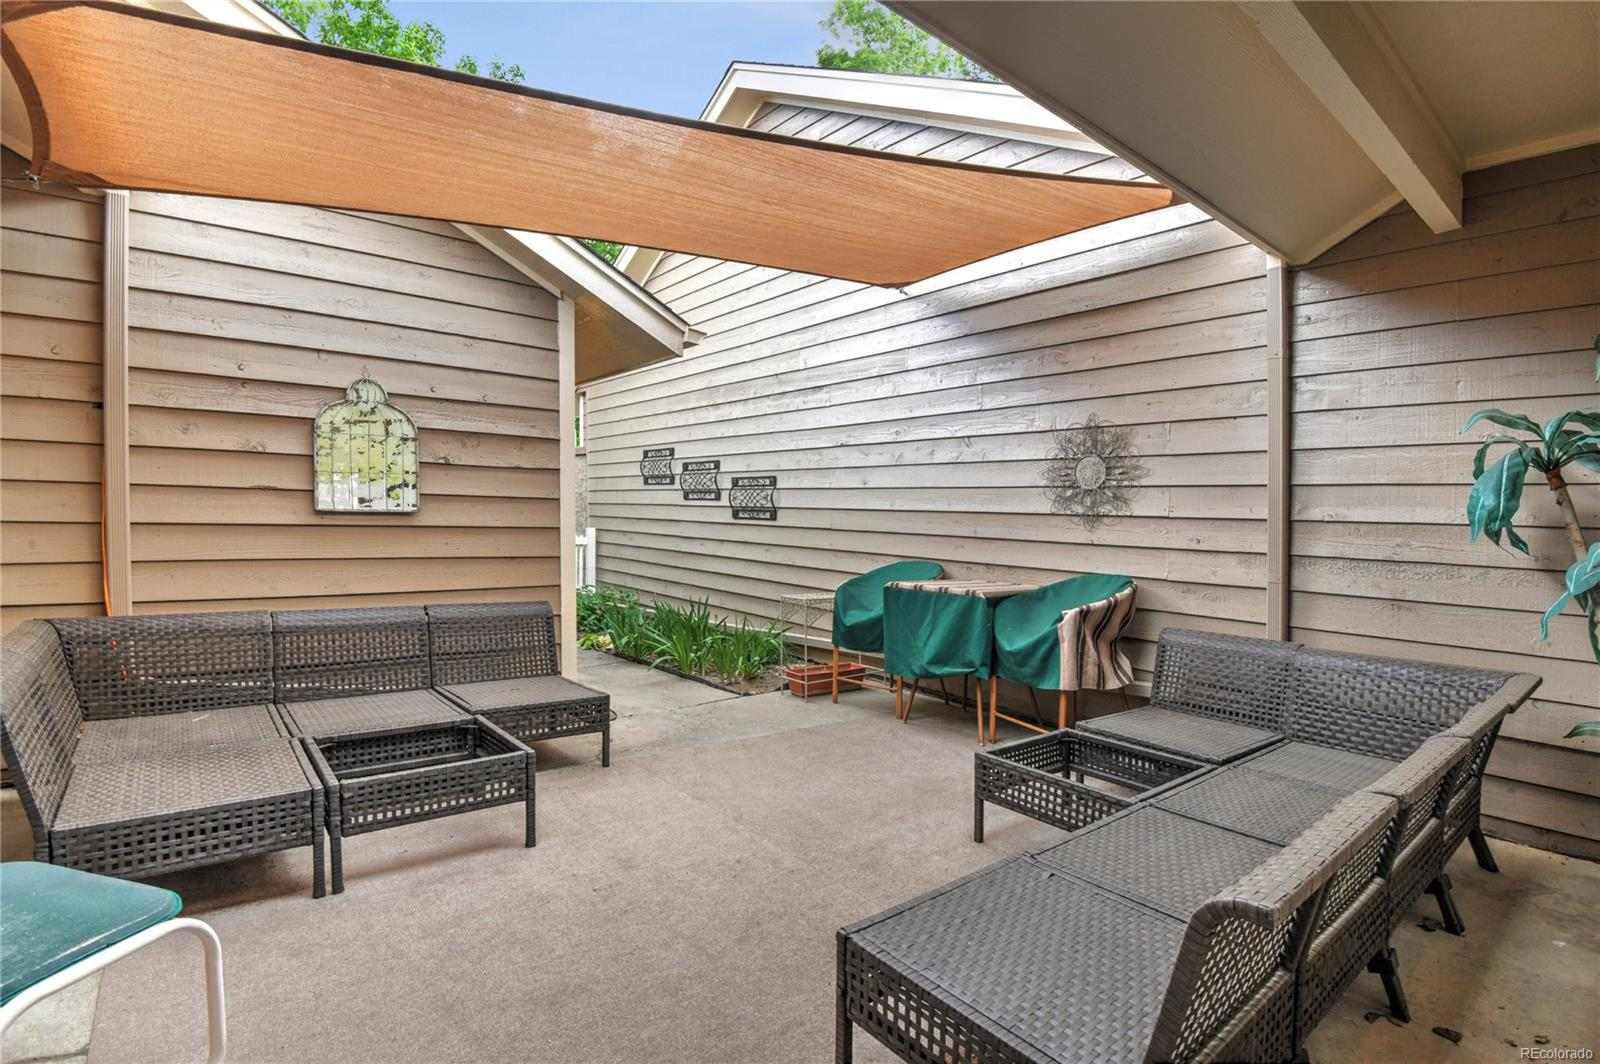 Private Courtyard with canopy, Entrance